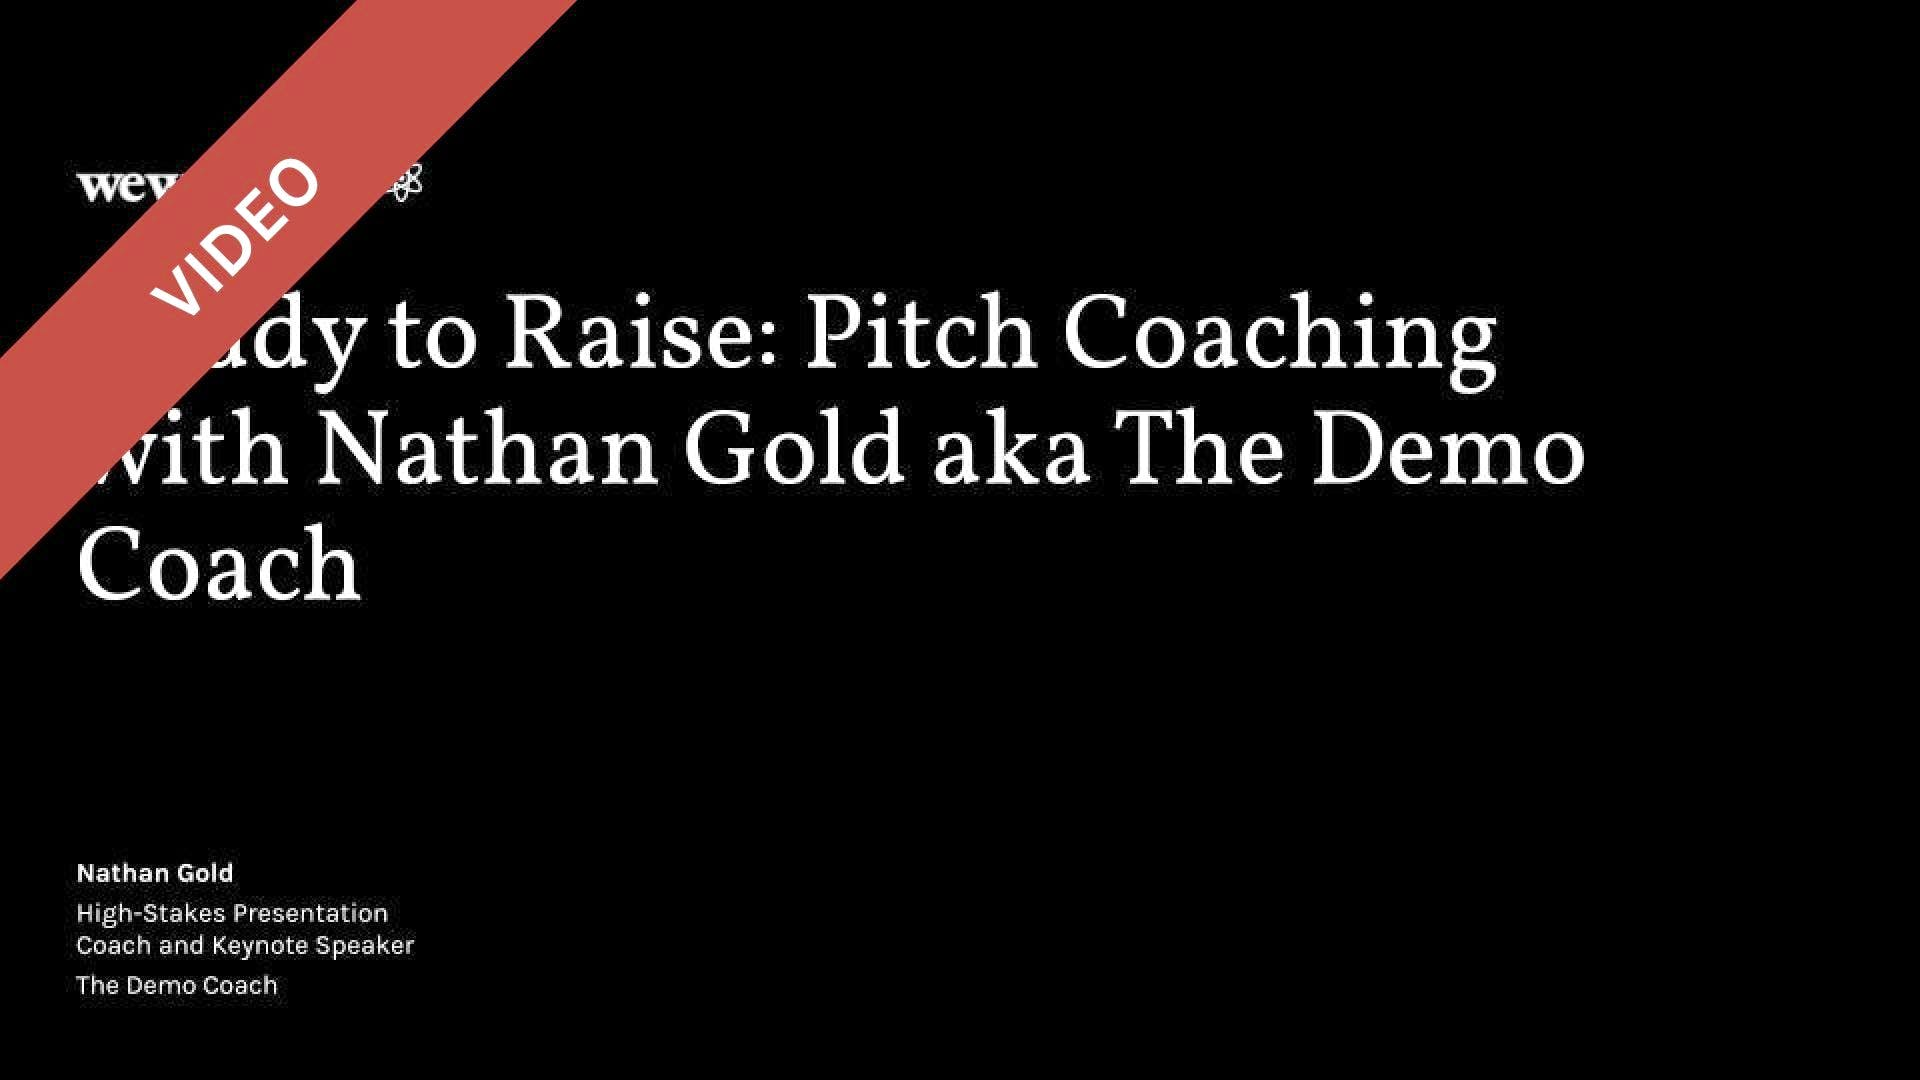 Ready to Raise: Pitch Coaching with Nathan Gold aka The Demo Coach